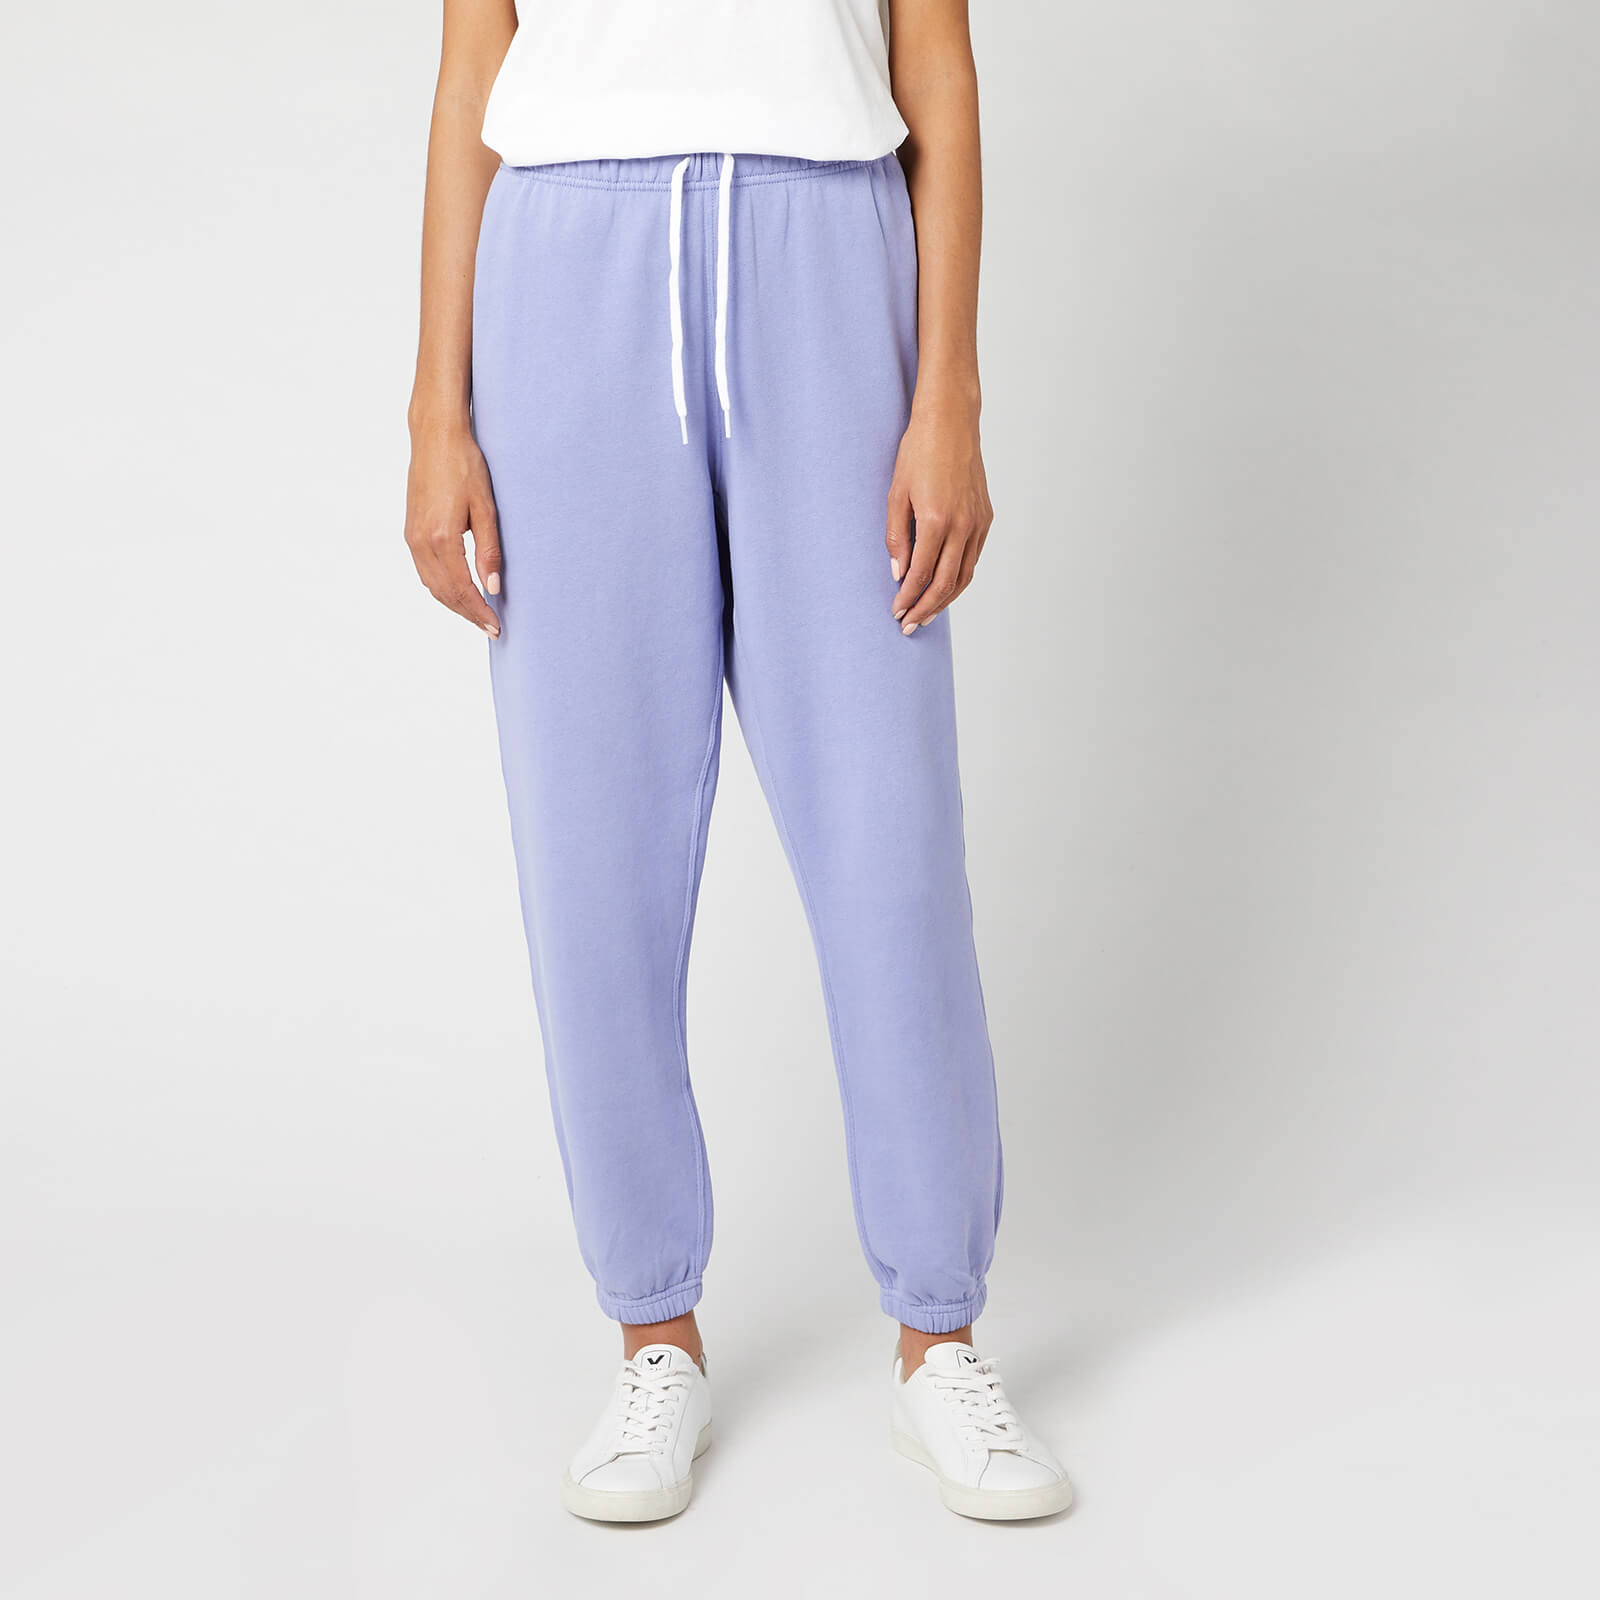 shop for latest selection of 2019 search for best Polo Ralph Lauren Women's Logo Sweatpants - East Blue